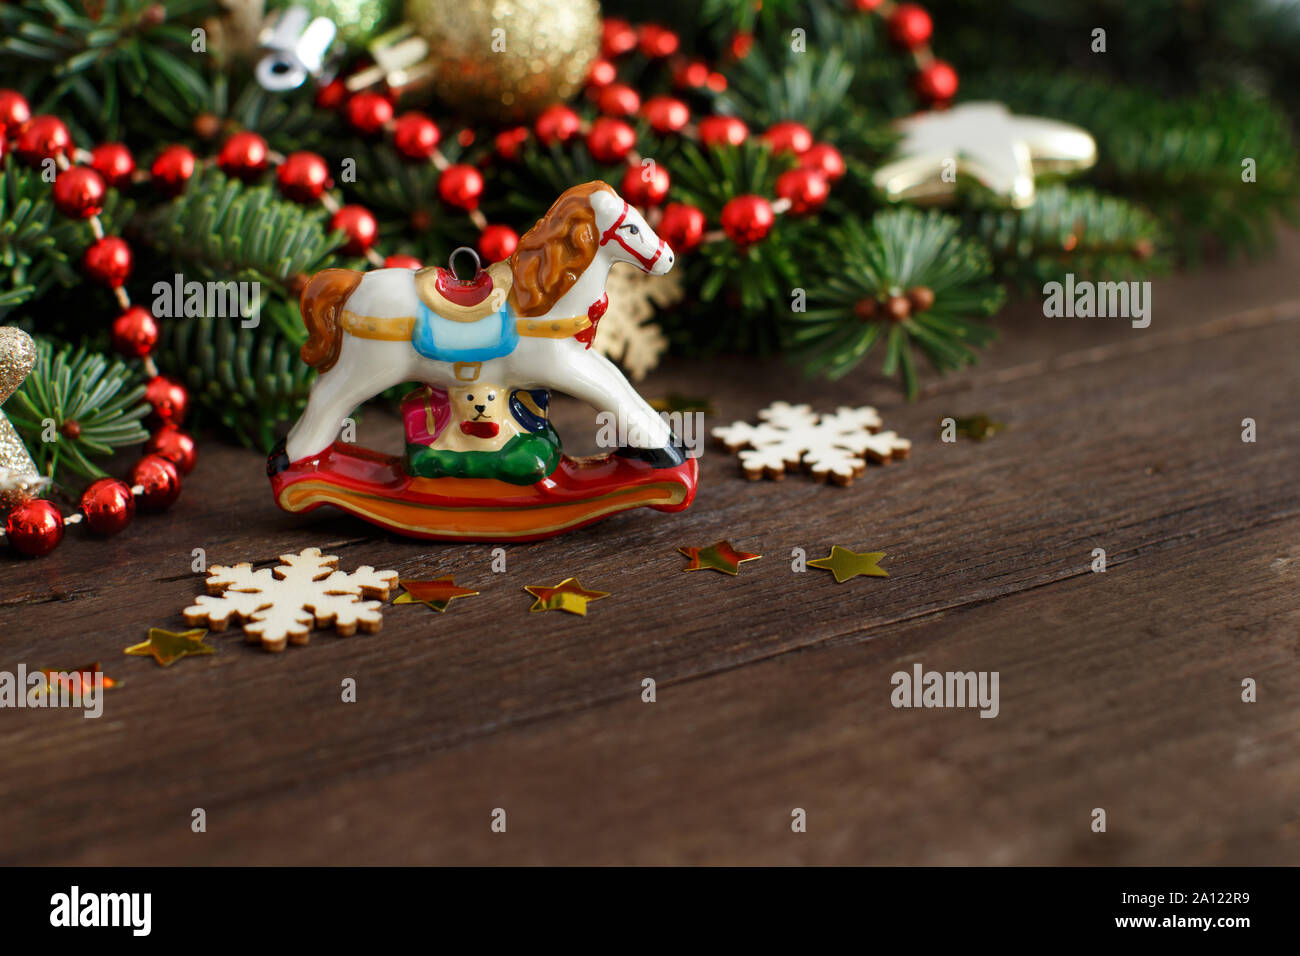 Wall Hanging Decorations Rocking Horse Christmas Tree Decoration White Wooden Shabby Chic Hanging Bauble Home Furniture Diy Crazyteen Vn